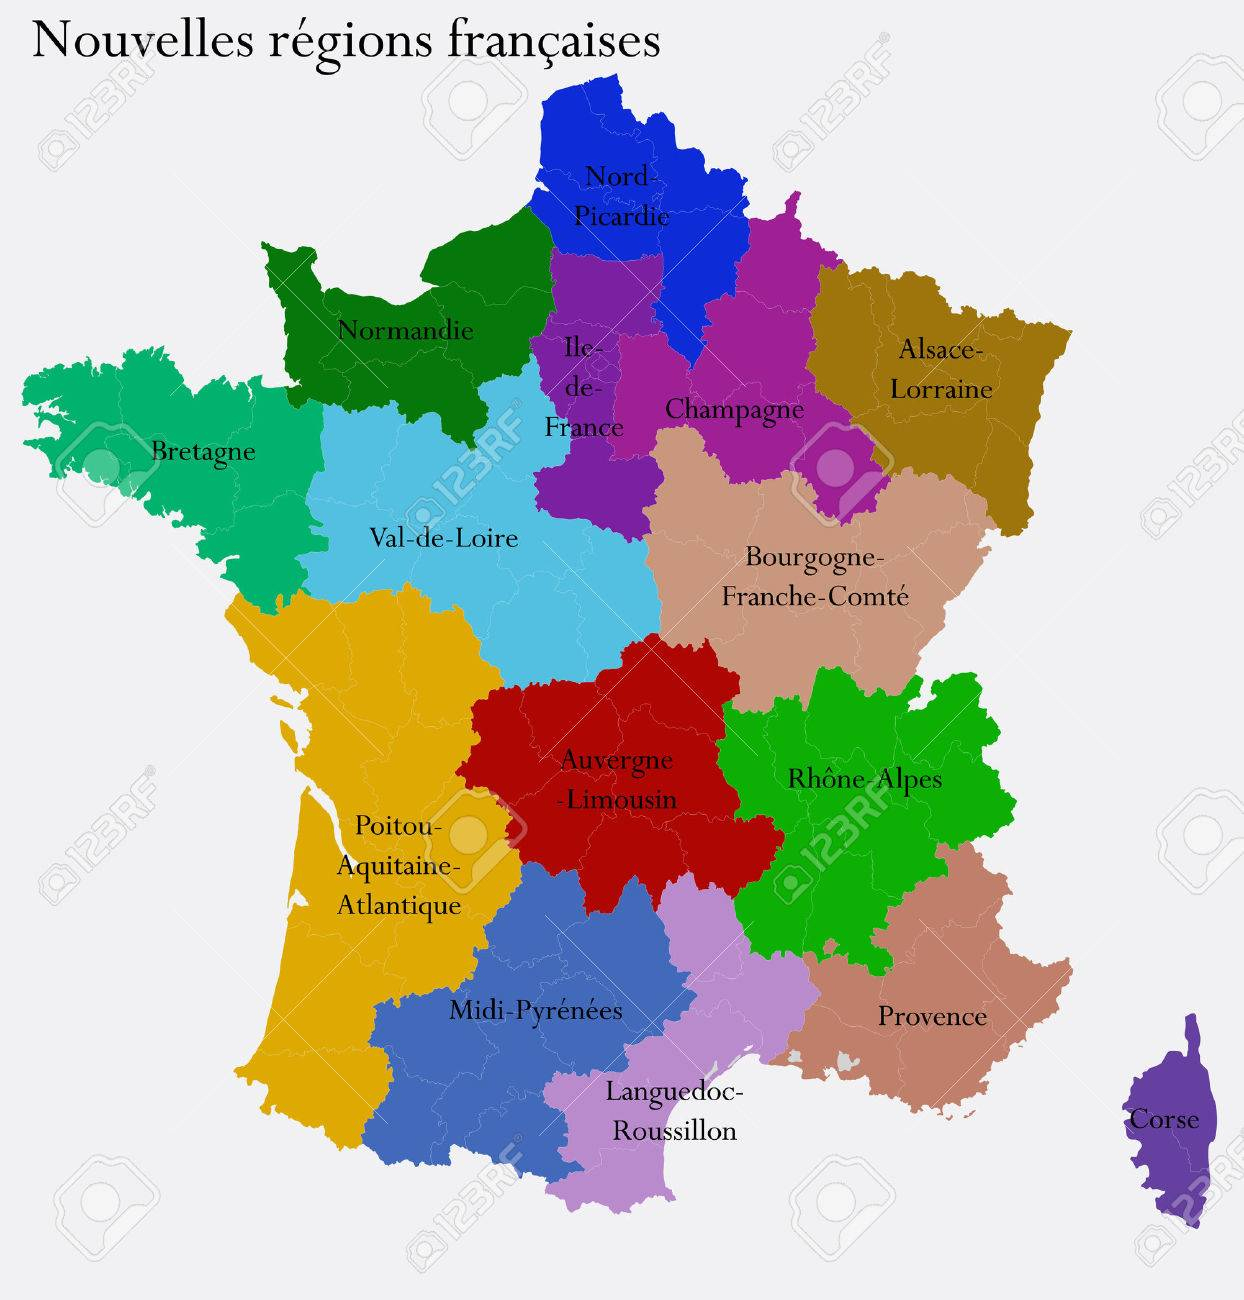 New French Regions Nouvelles Regions De France Separated Departments tout Nouvelles Régions De France